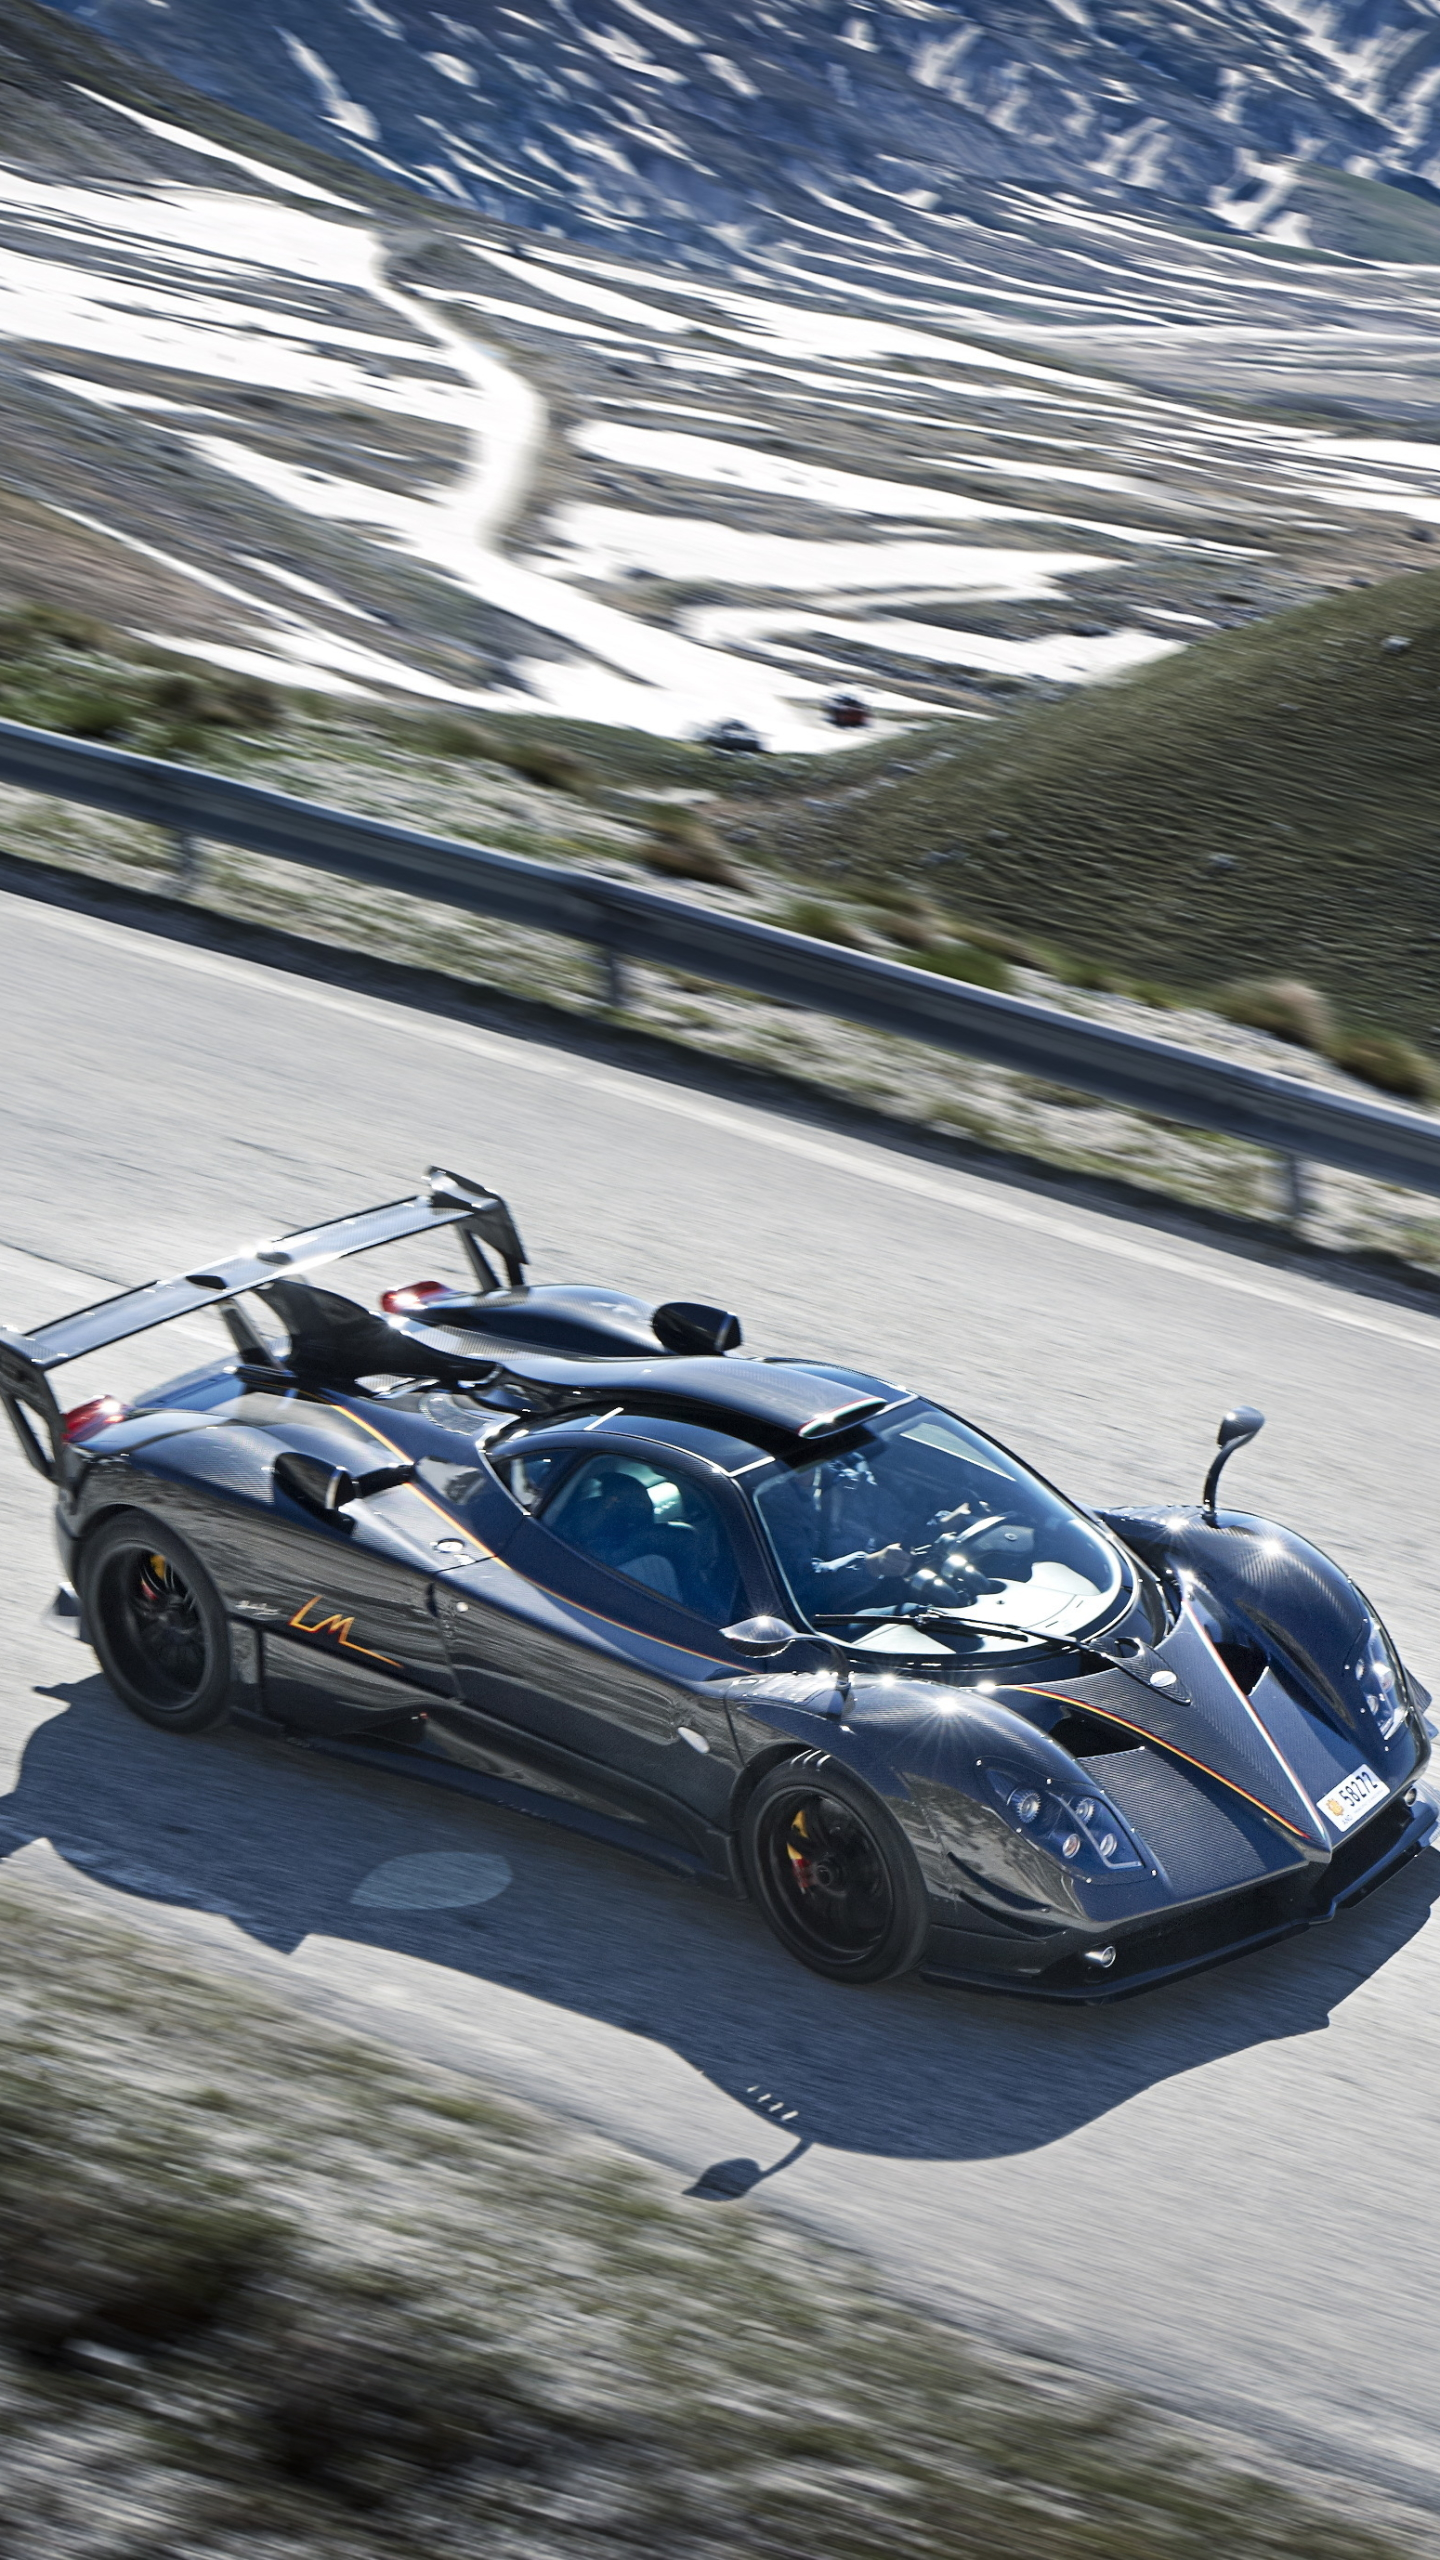 VehiclesPagani Zonda 1440x2560 Wallpaper ID 720266   Mobile Abyss 1440x2560